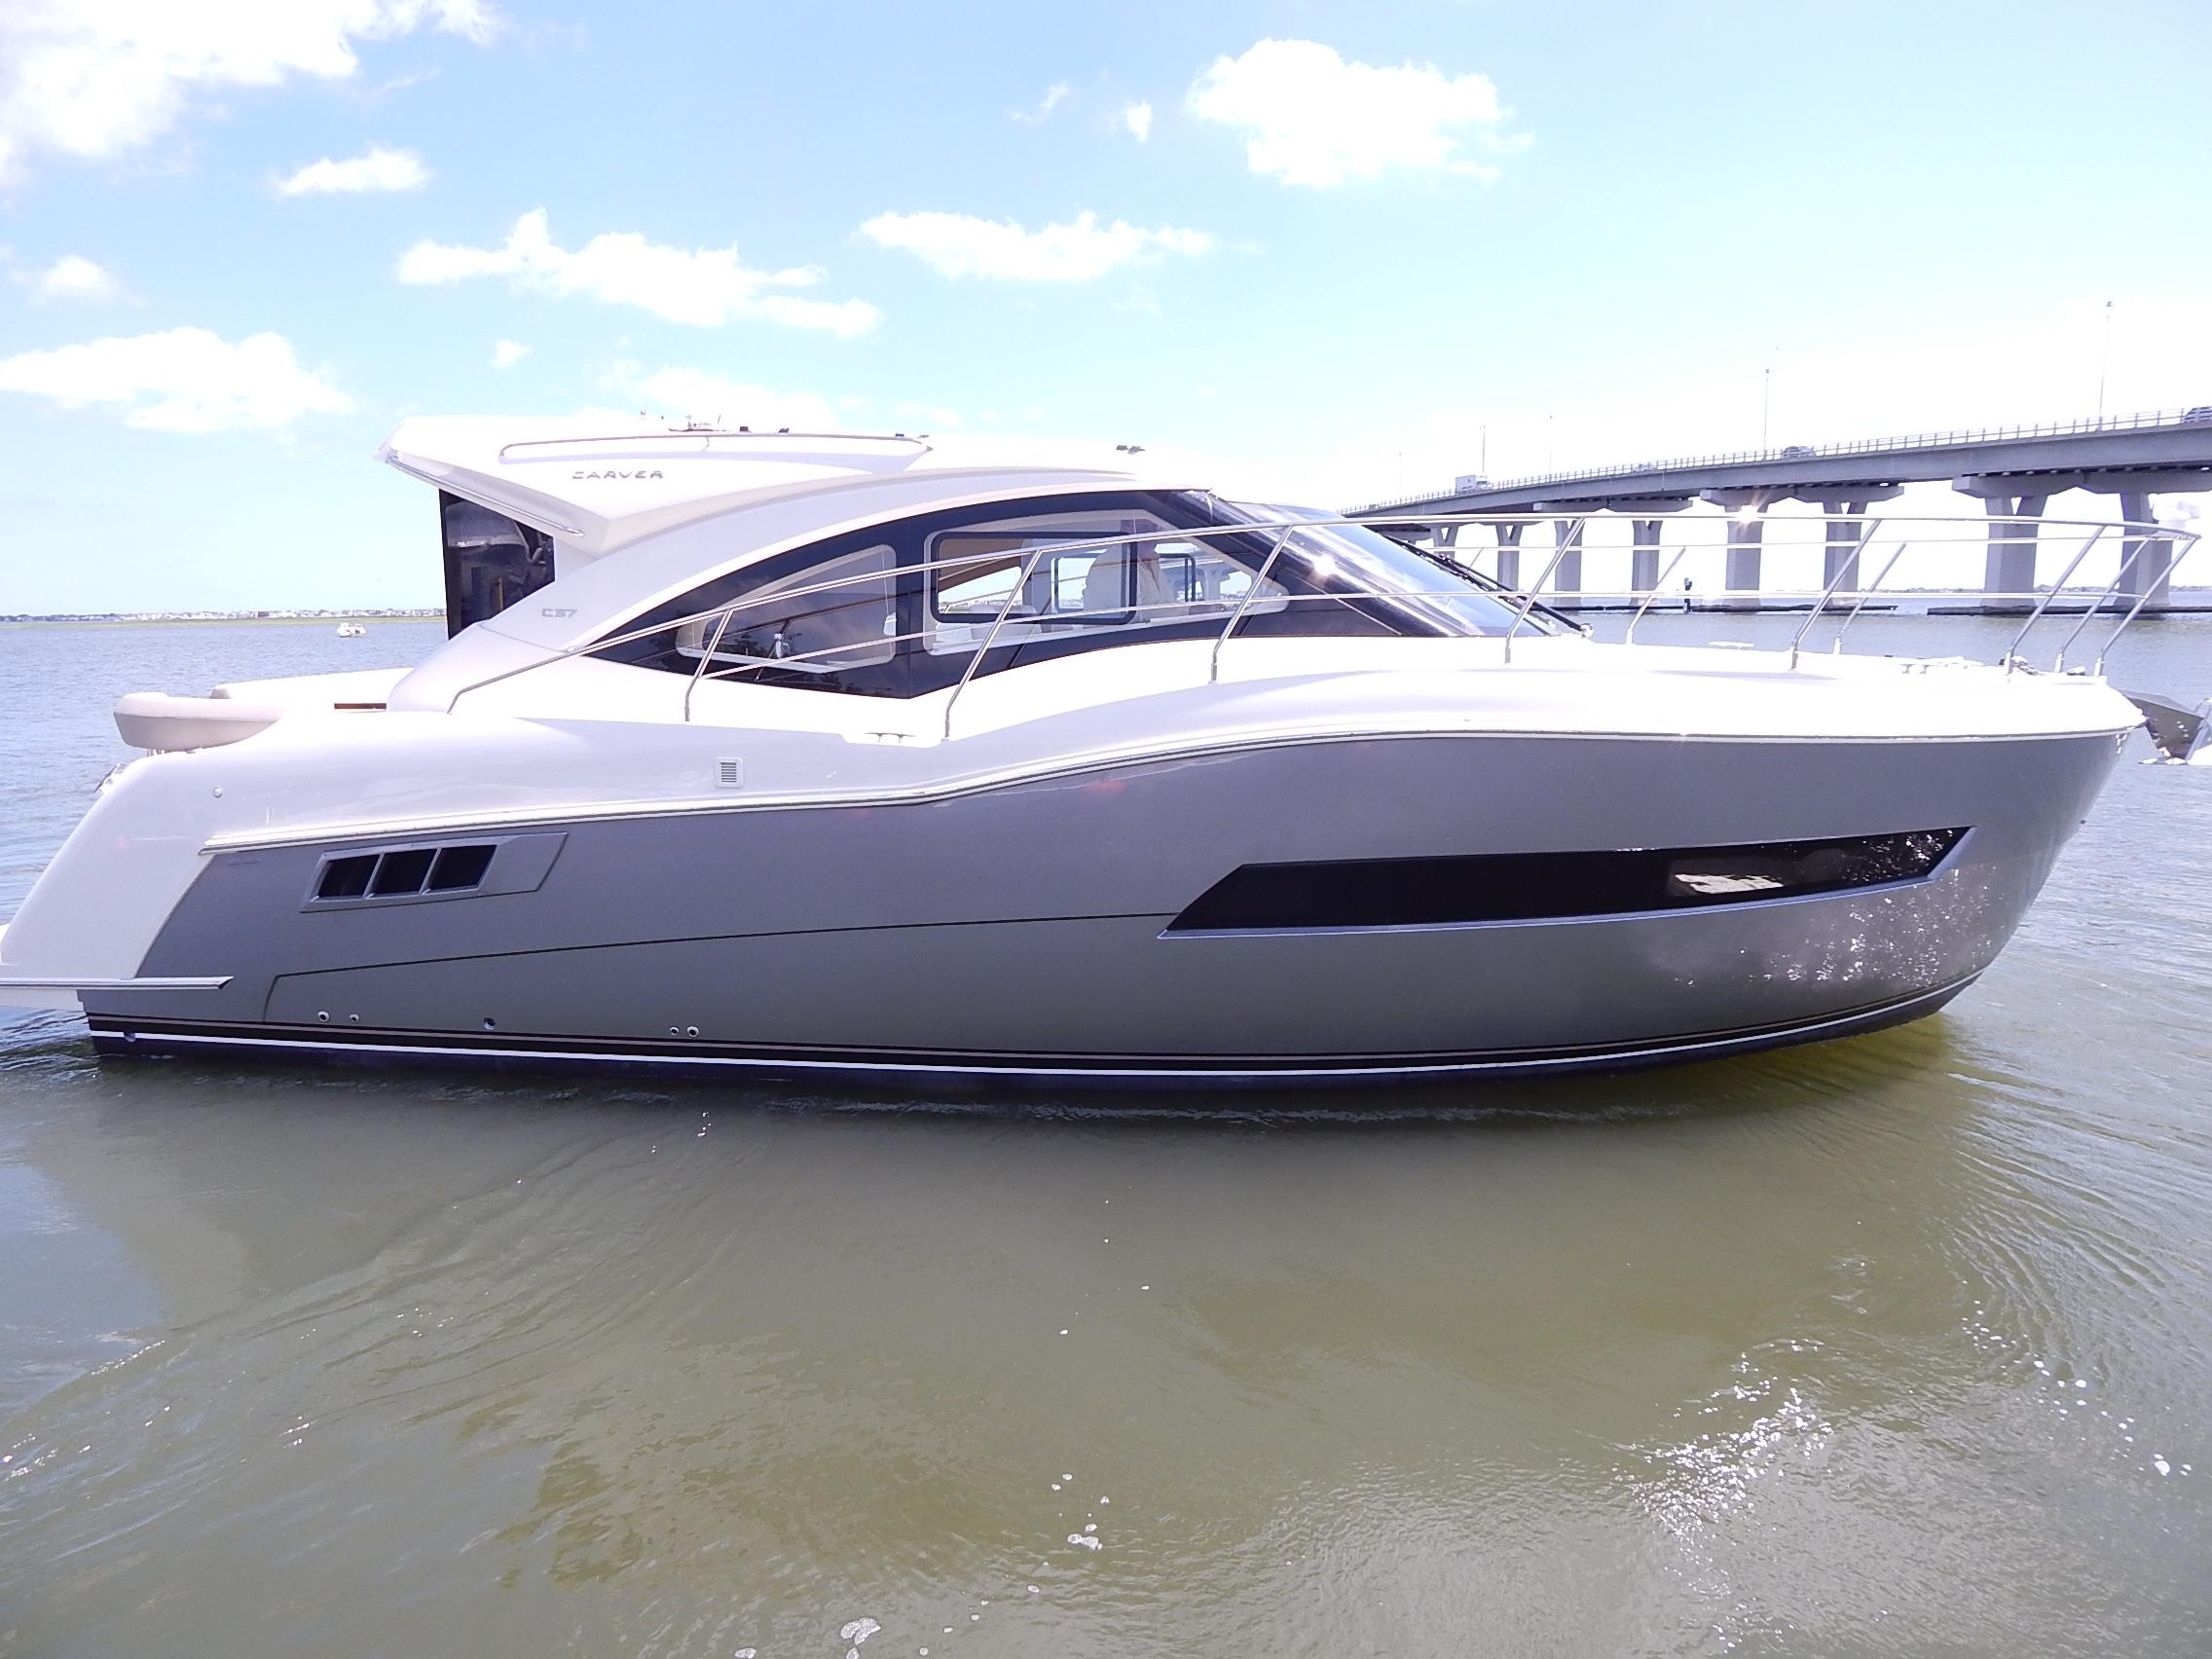 2018 Carver C37 Somers Point, New Jersey - Waterfront Marine